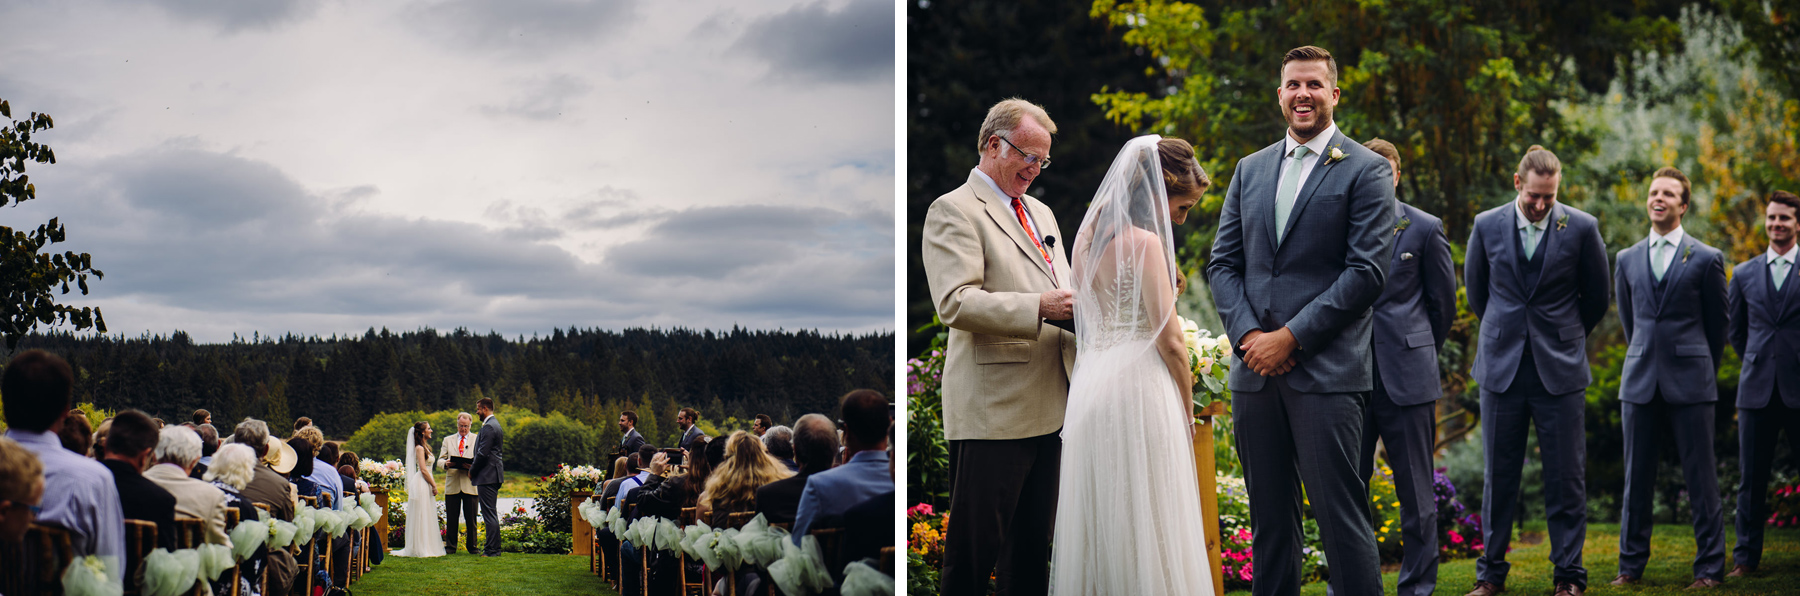 whidbey-island-fireseed-catering-wedding-32